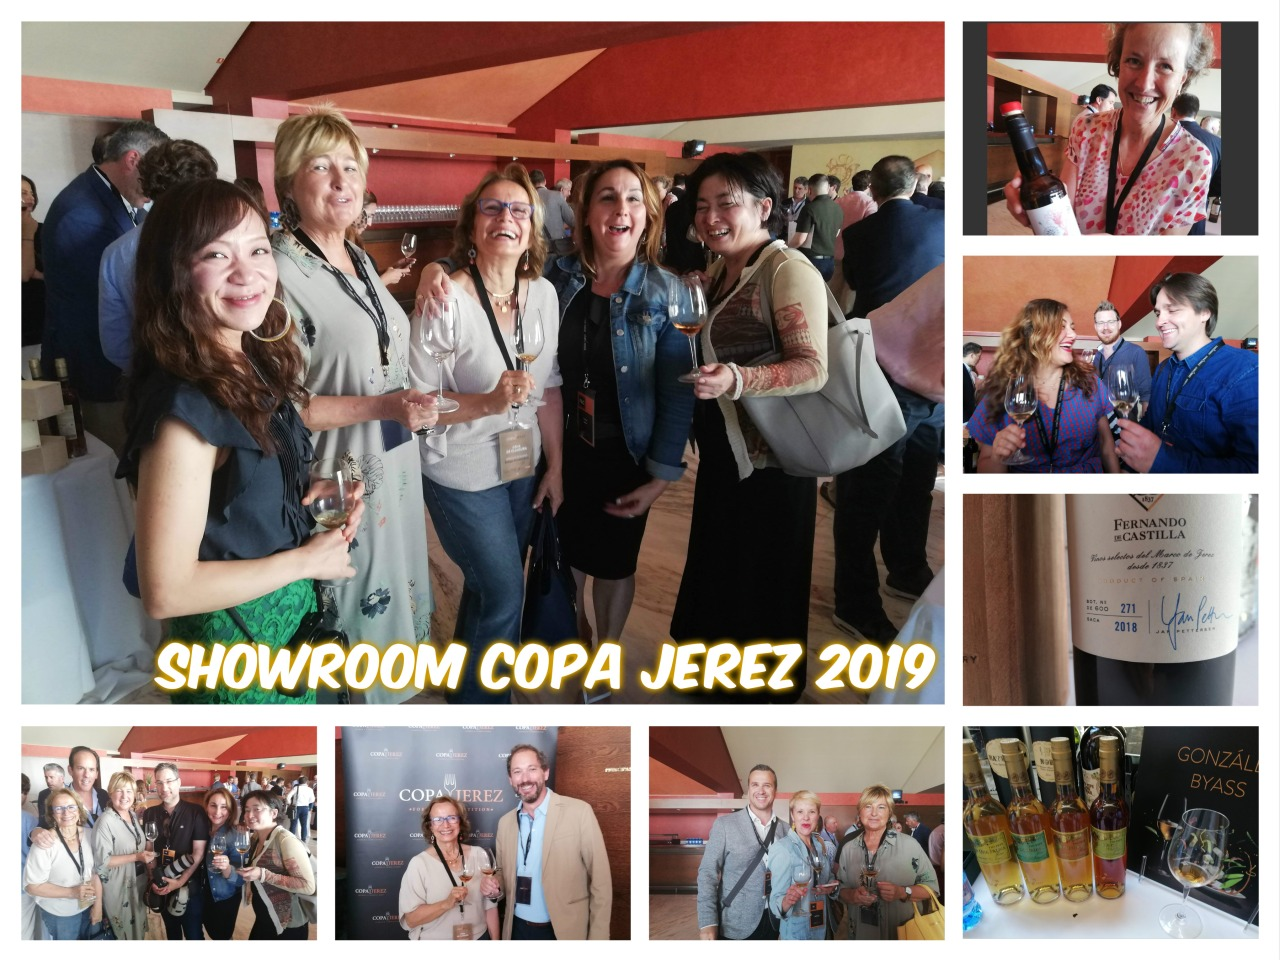 SHOWROOM: VIII Copa Jerez Forum and Competition